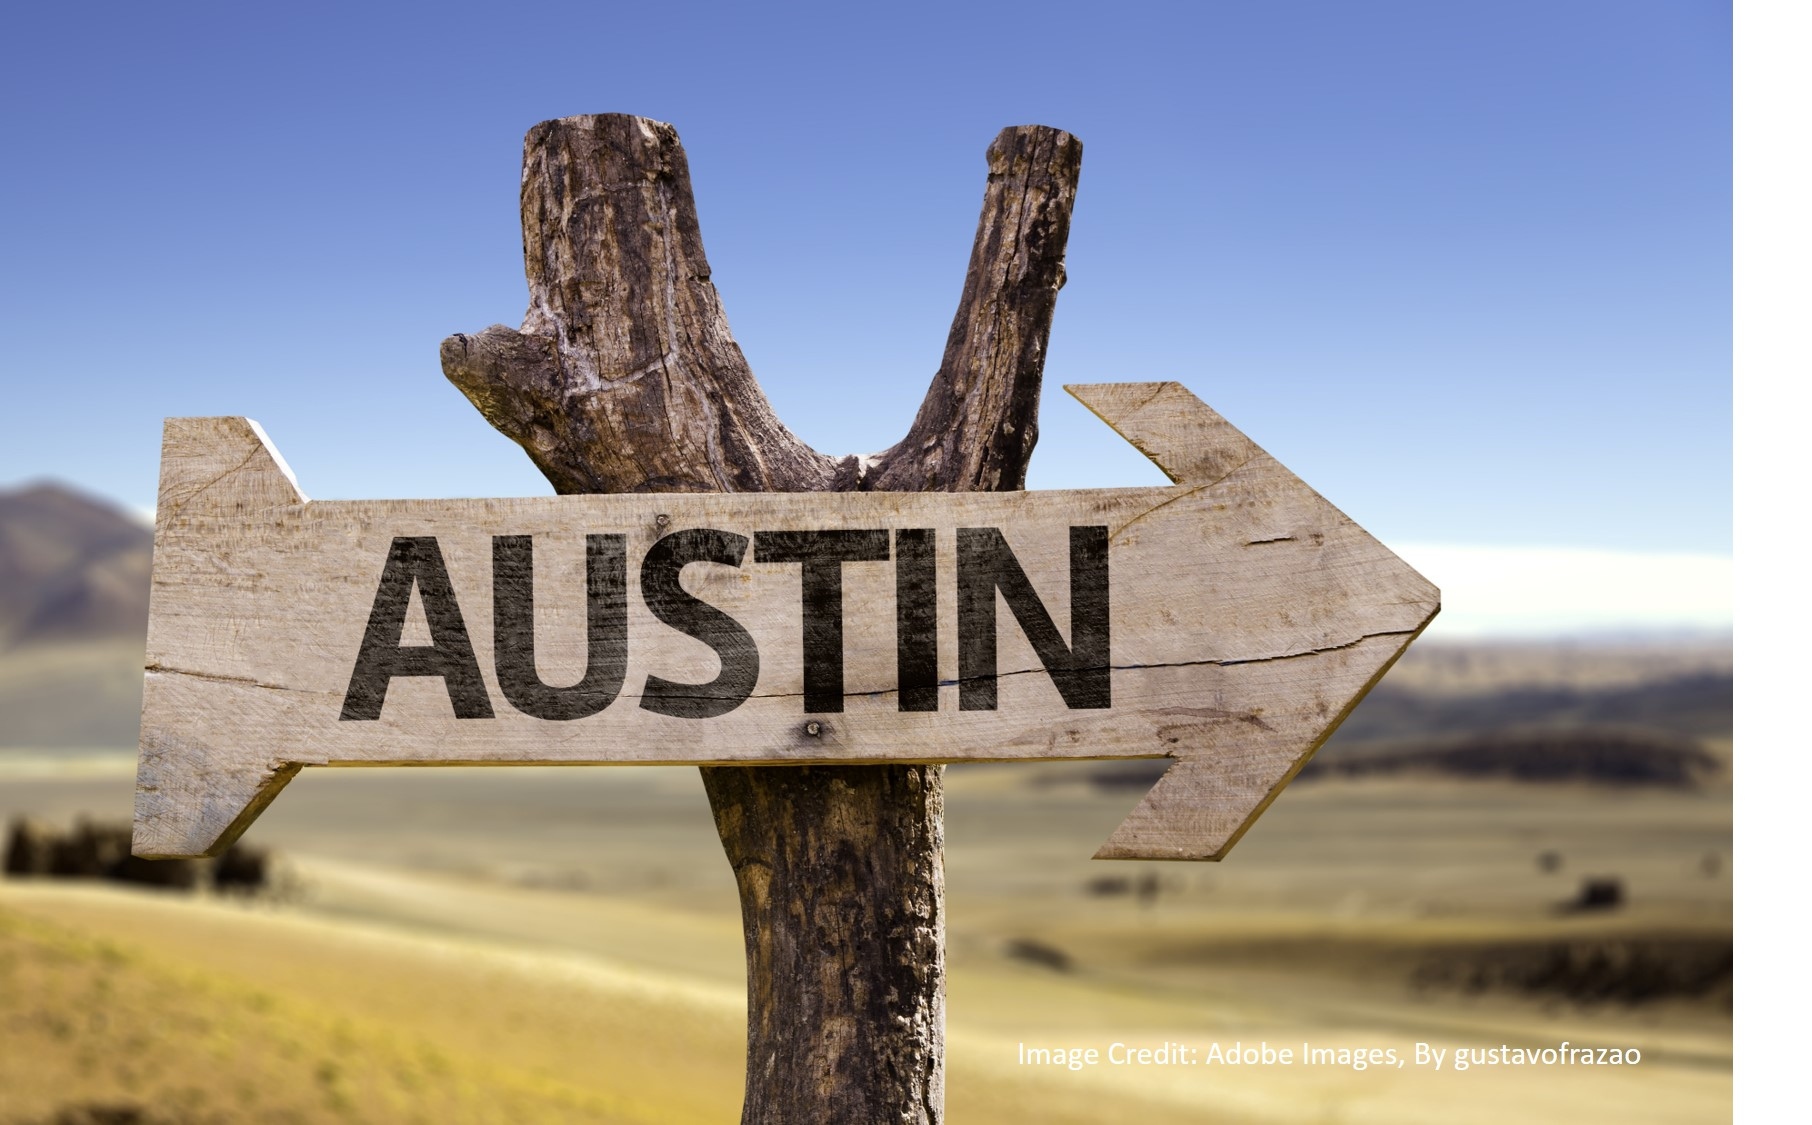 """Hot day in Austin with a wooden sign that reads """"Austin""""."""